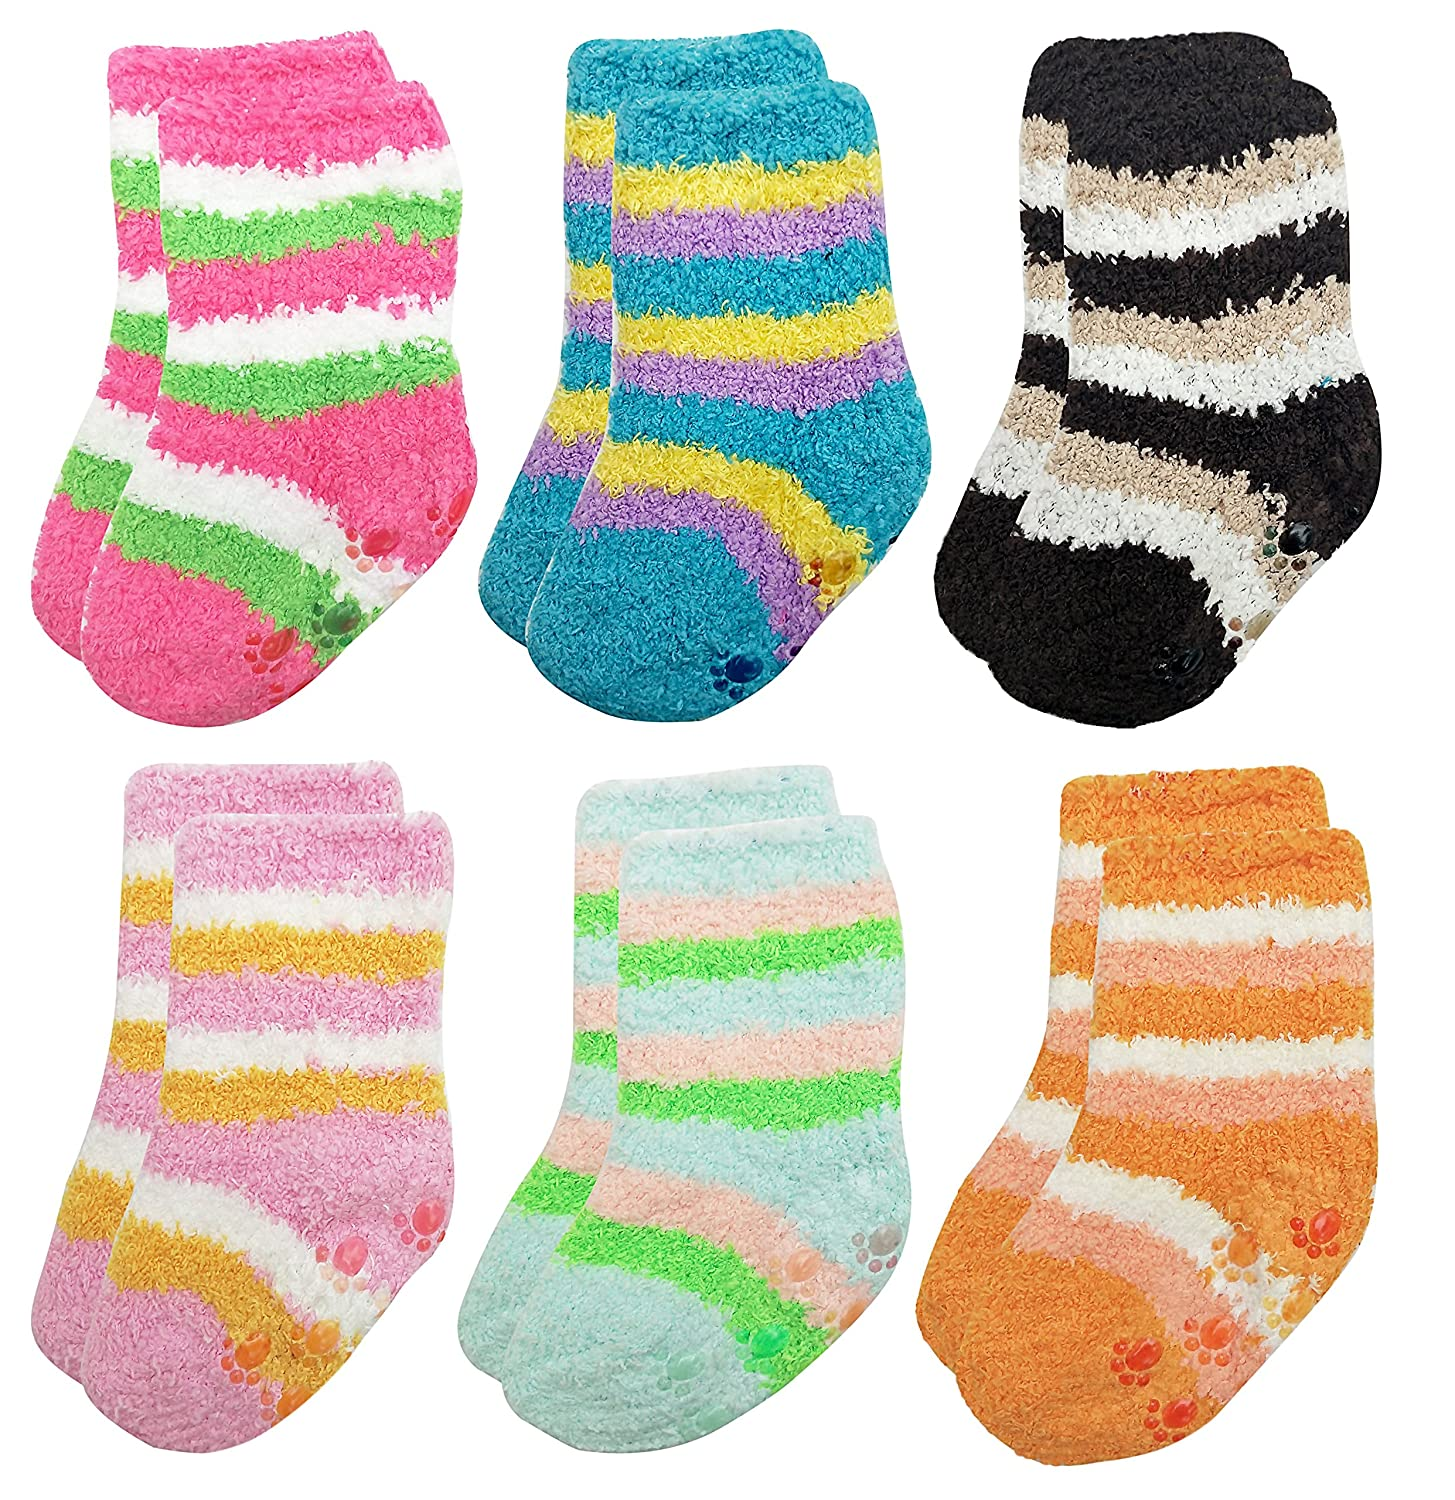 Deluxe Anti Slip Non Skid Slipper Socks with Grips For Baby Toddler Kids Girls